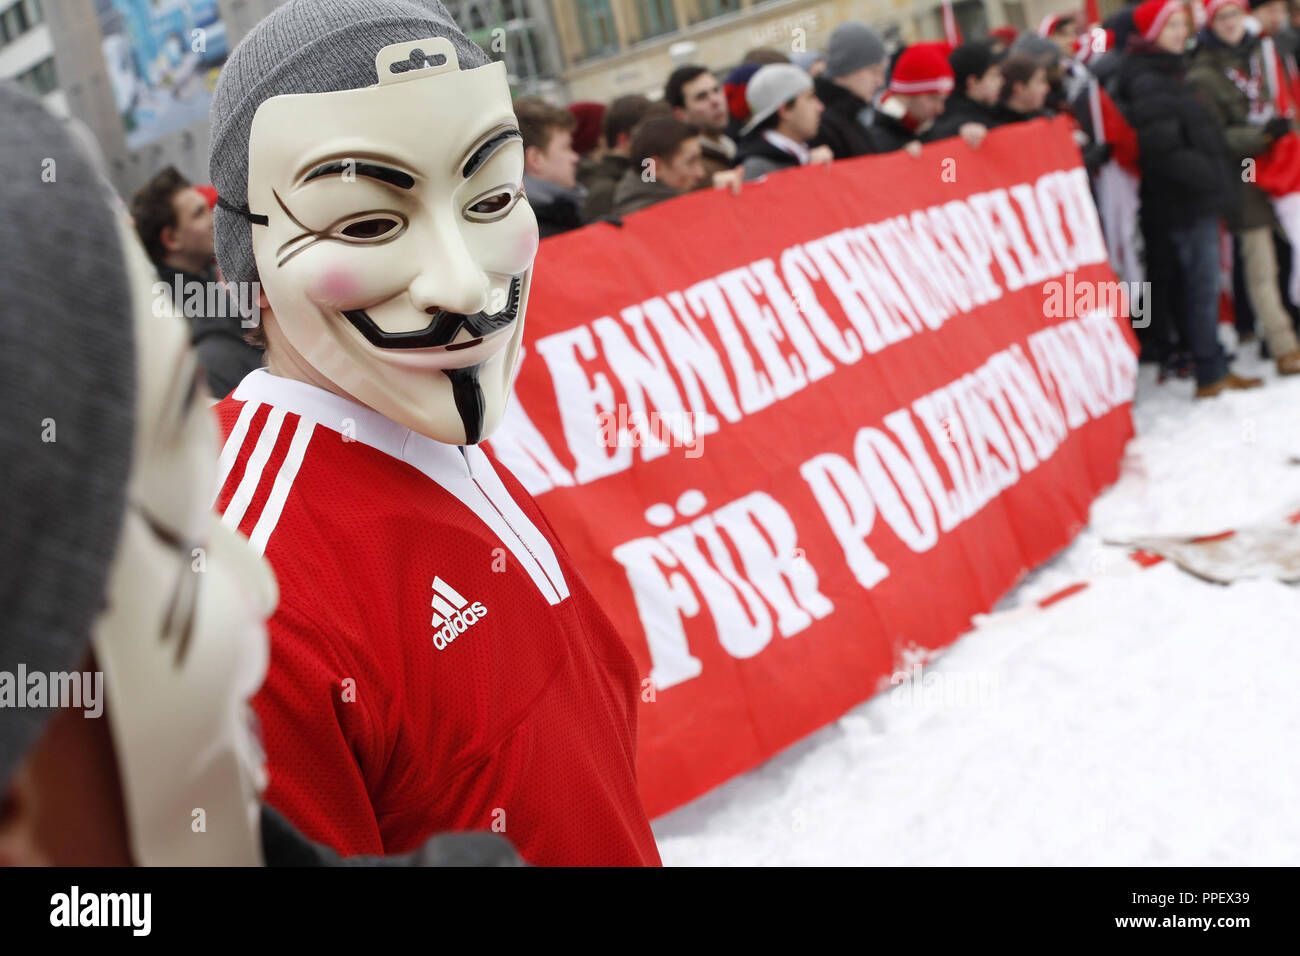 Football fans of FC Bayern Munich, Greuter Fuerth and TSV 1860 Muenchen demonstrate at the Munich Marienhof for the obligation of police officers in action to wear identifying badges. - Stock Image